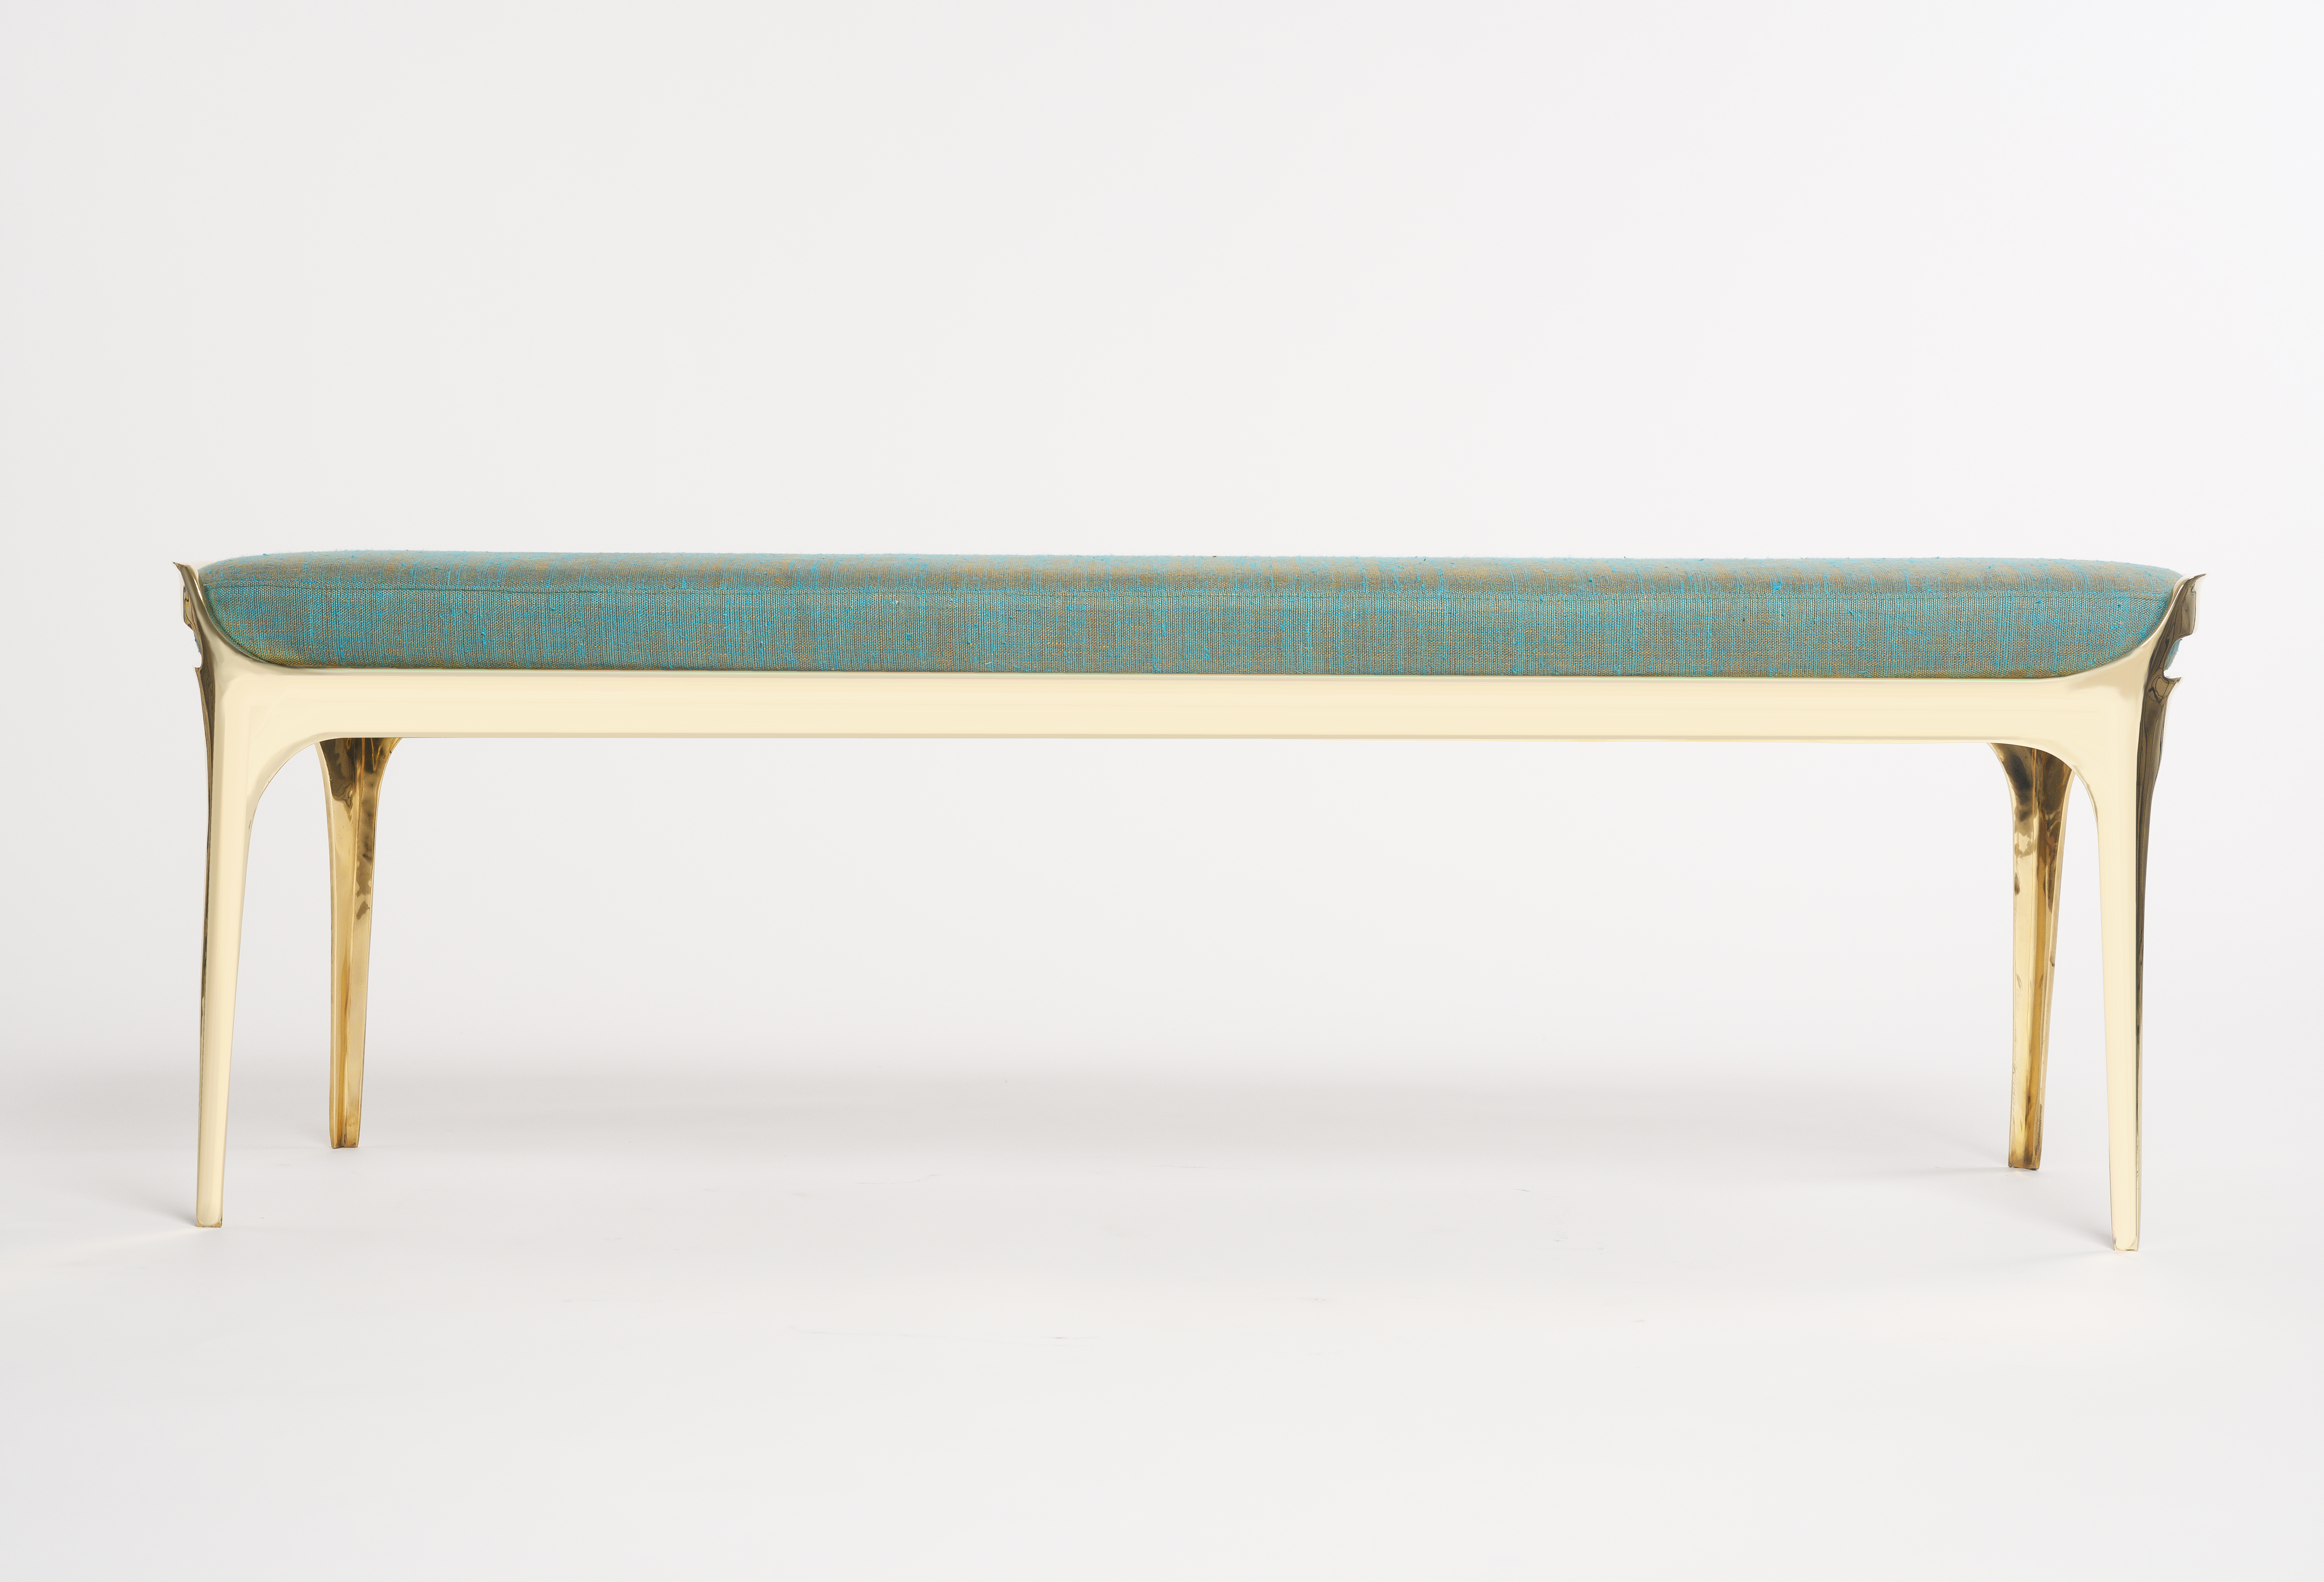 NYDC_WNWN_products_david_sutherland_elain_atelier_Bruda_bench_BEE_4946BEE_5207